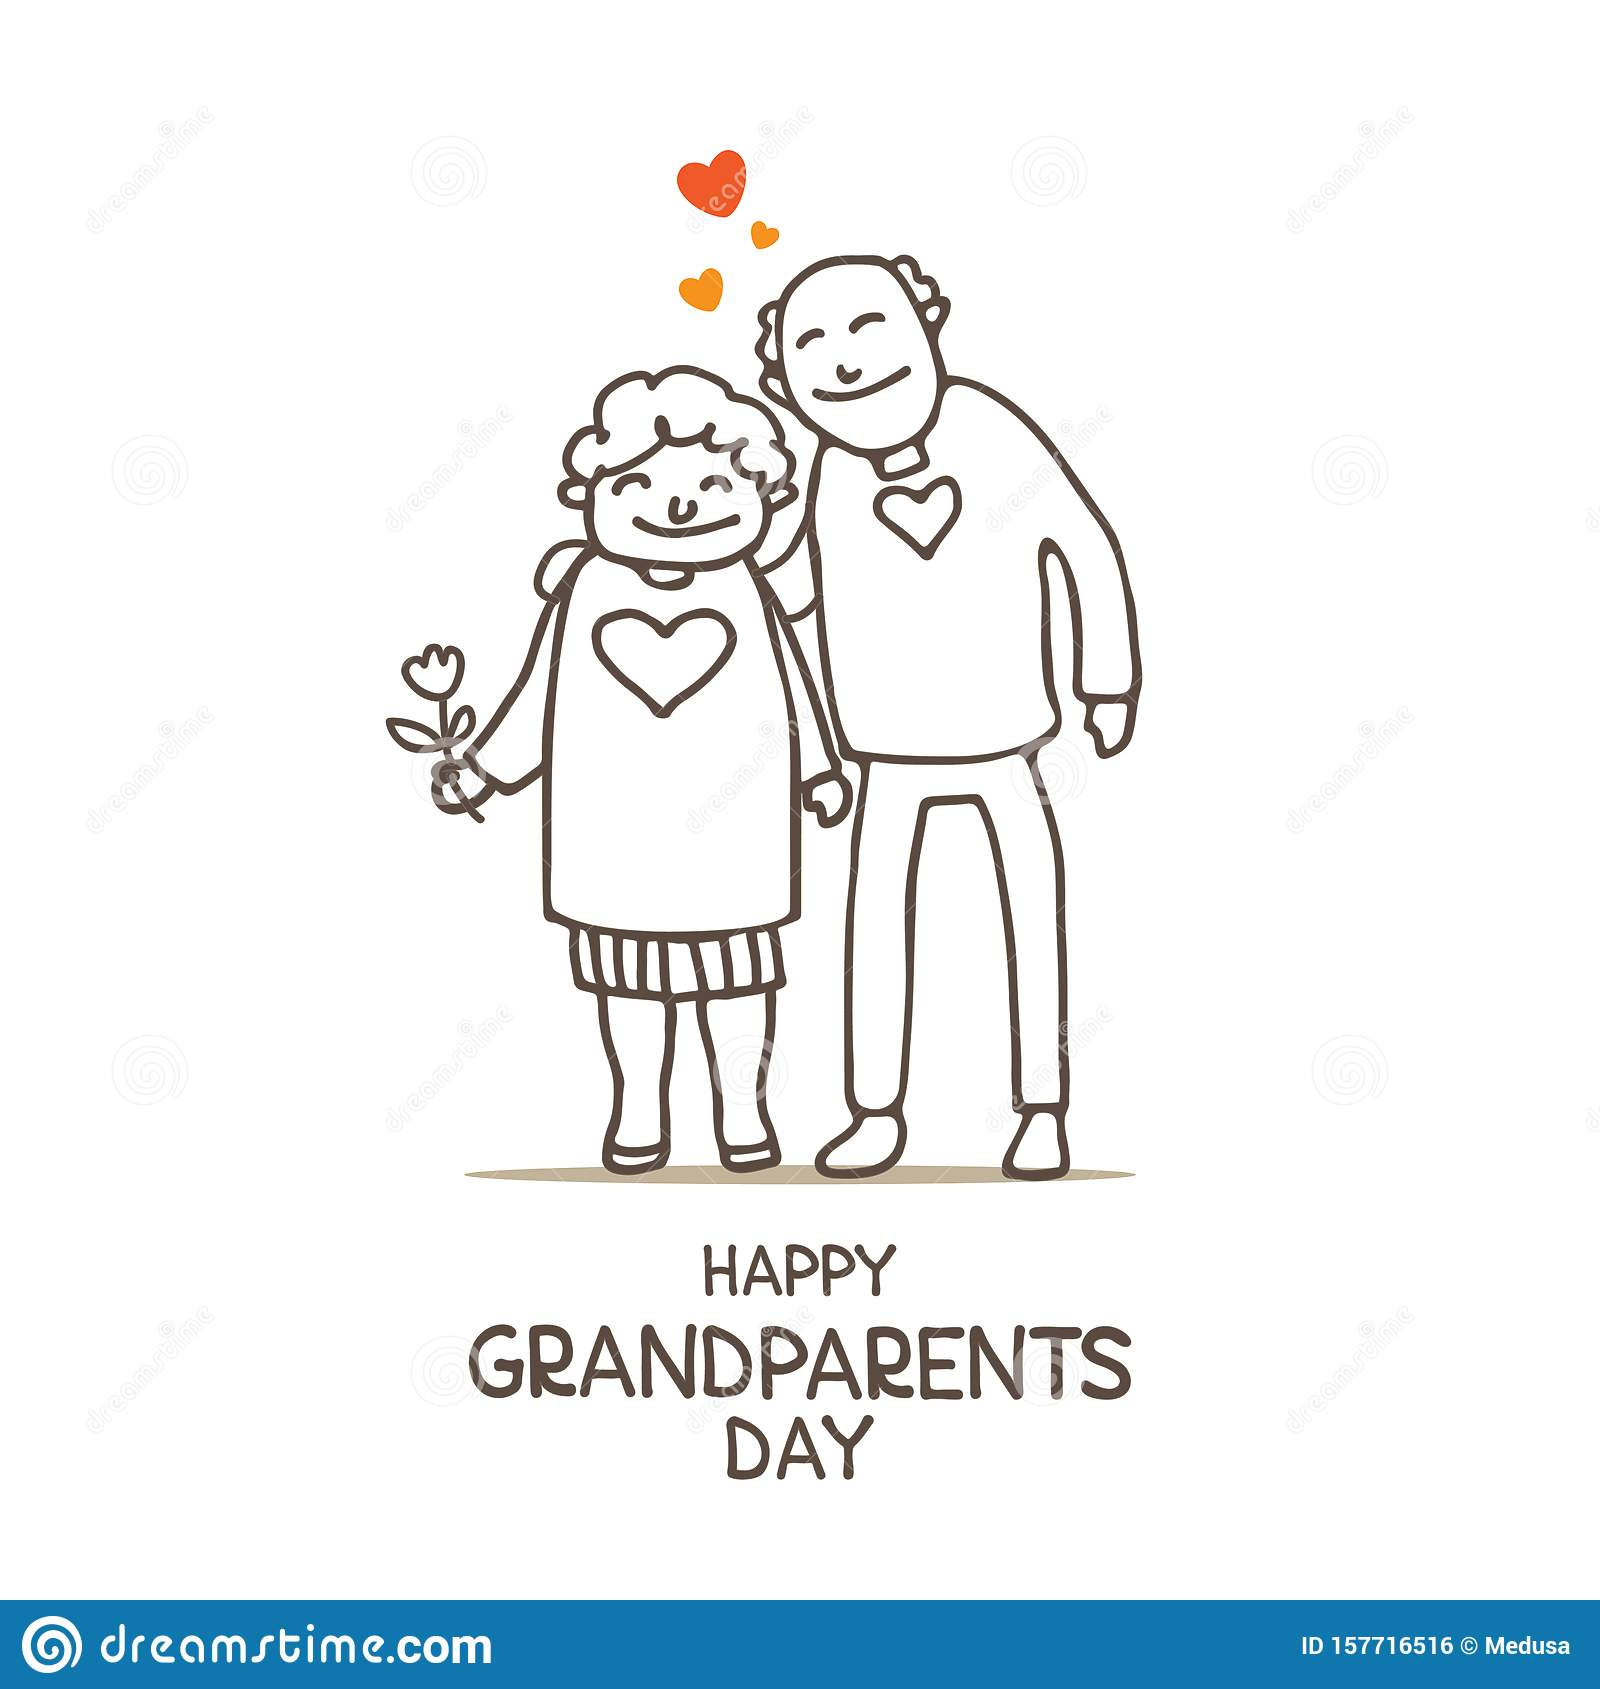 Grandparents day-07